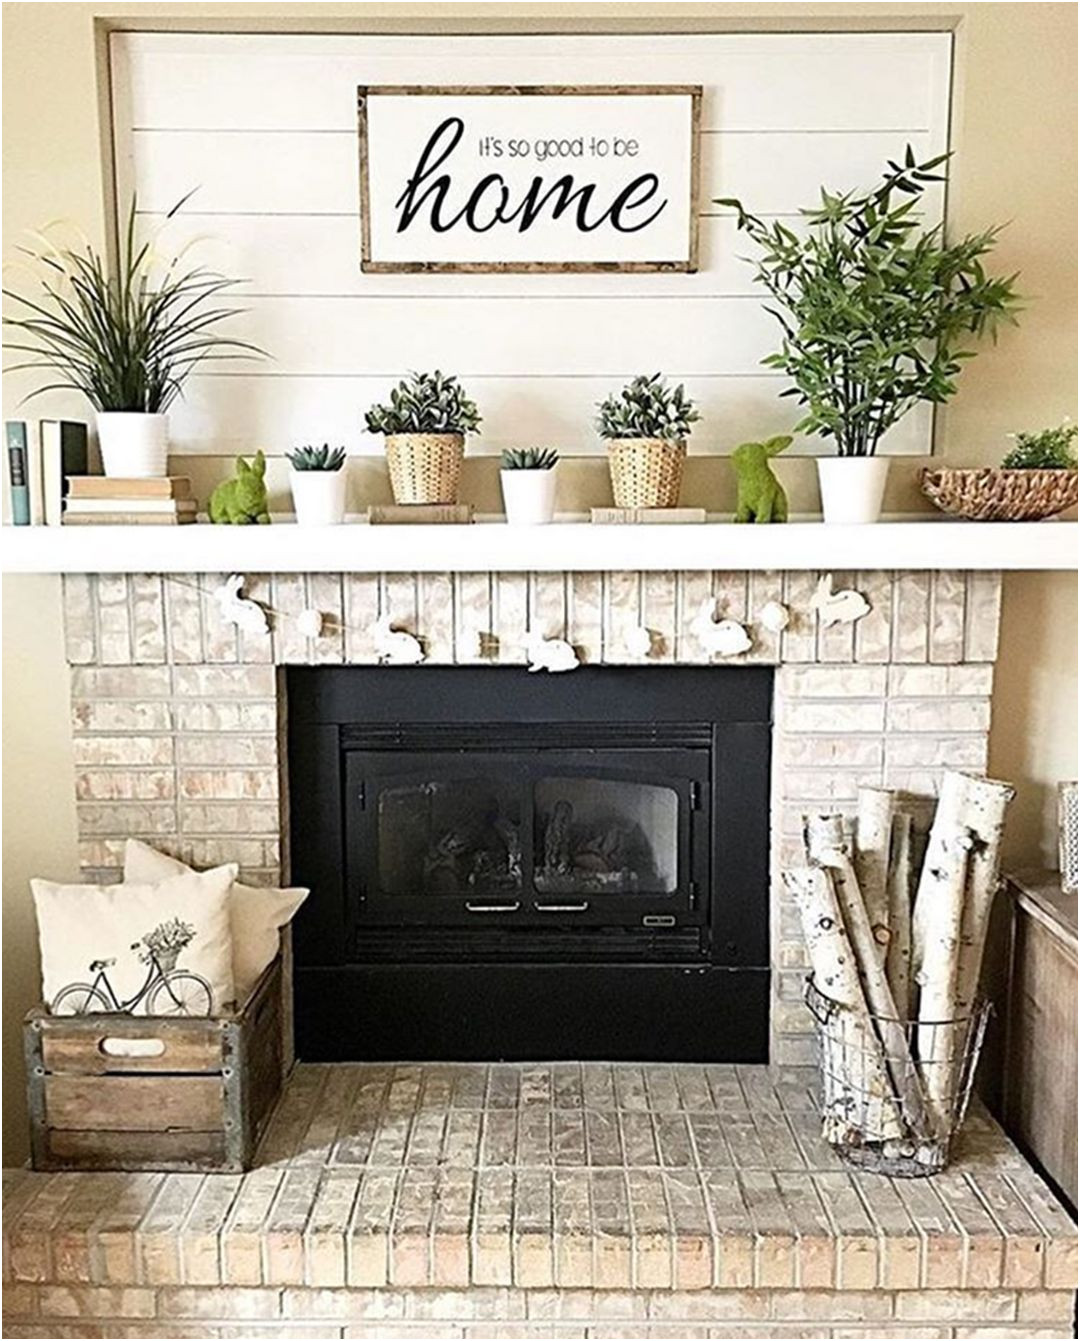 Fireplace Decorating Ideas Unique Farmhouse Fireplace Mantel Decor Decor It S